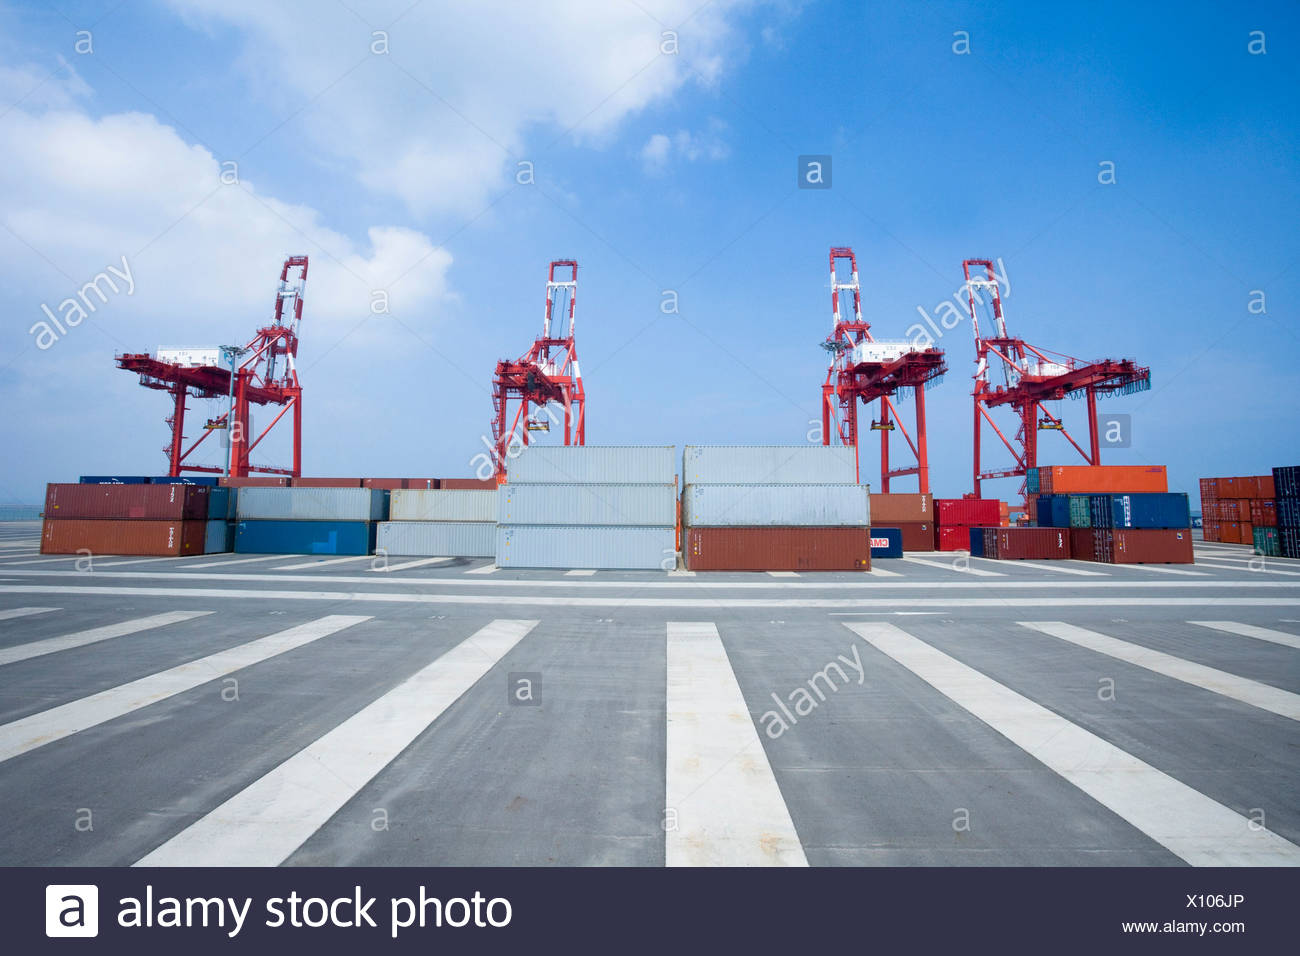 crane lift up container boxes - Stock Image